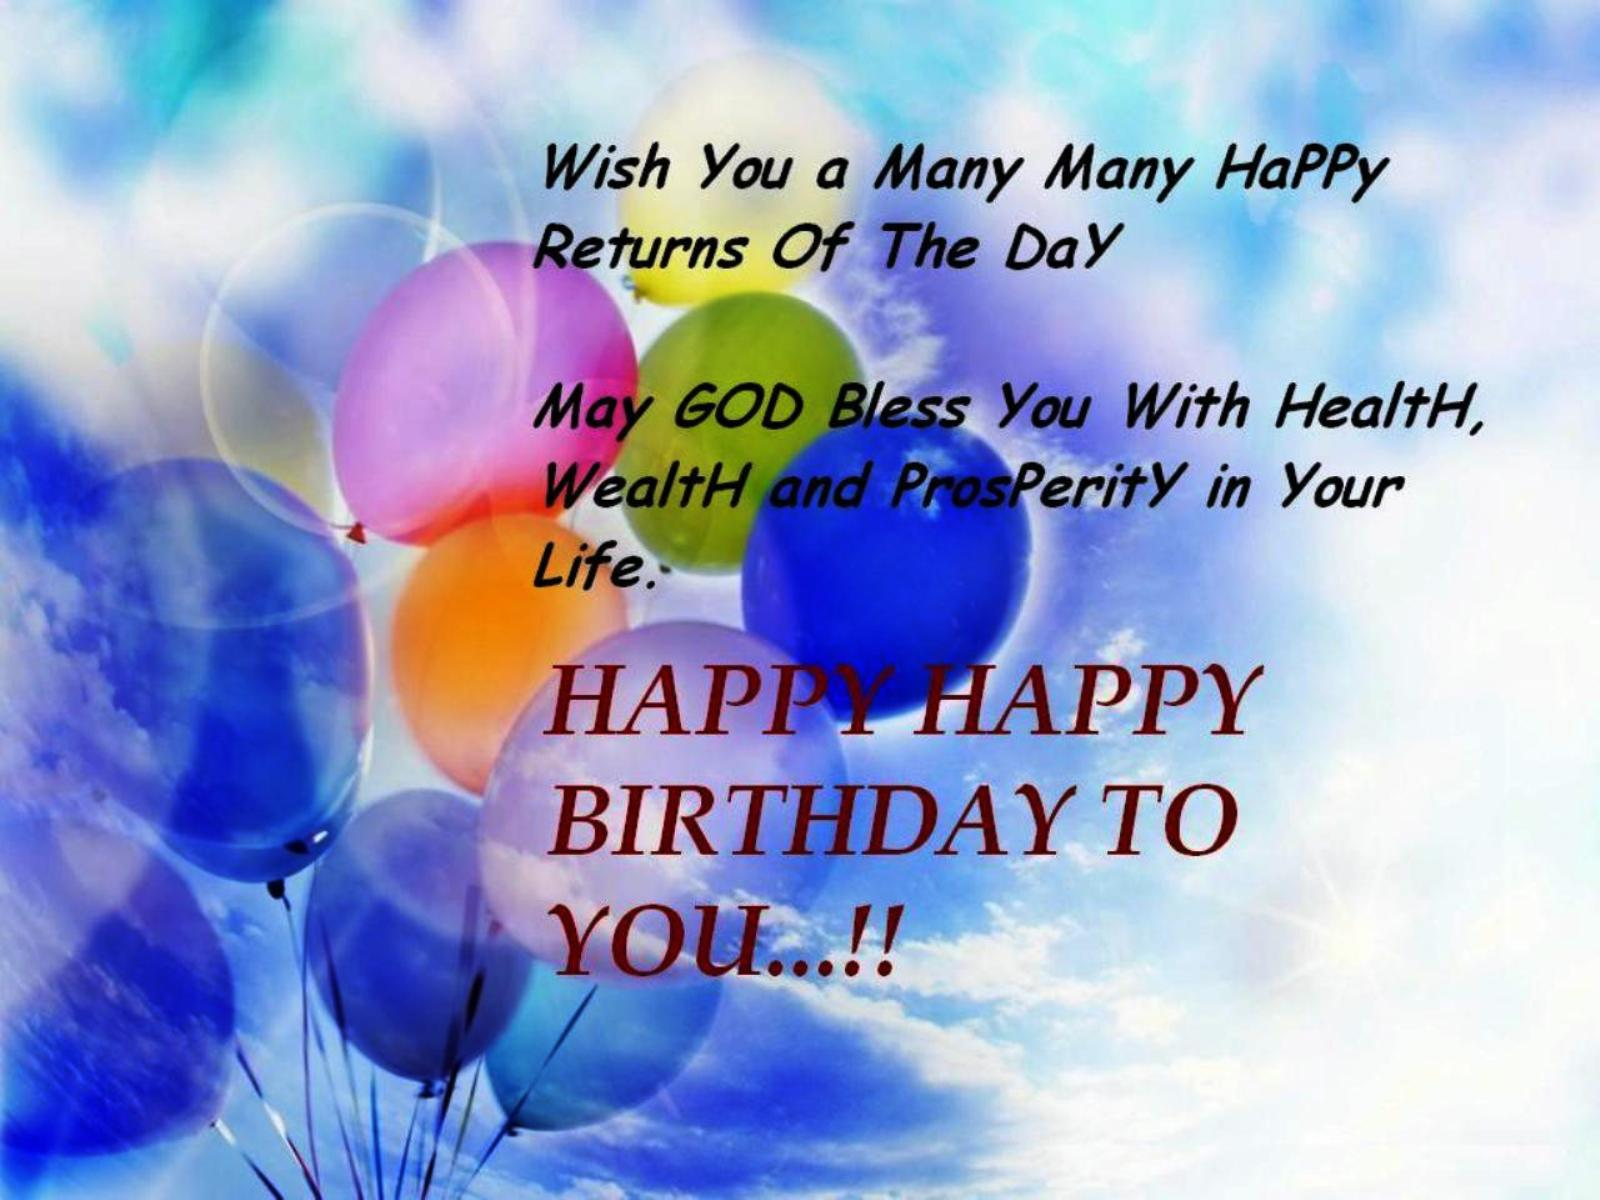 best birthday wishes and quotes ; birthday-card-quotes-for-grandma-best-of-best-birthday-wishes-quotes-fair-63-best-s-birthday-of-birthday-card-quotes-for-grandma